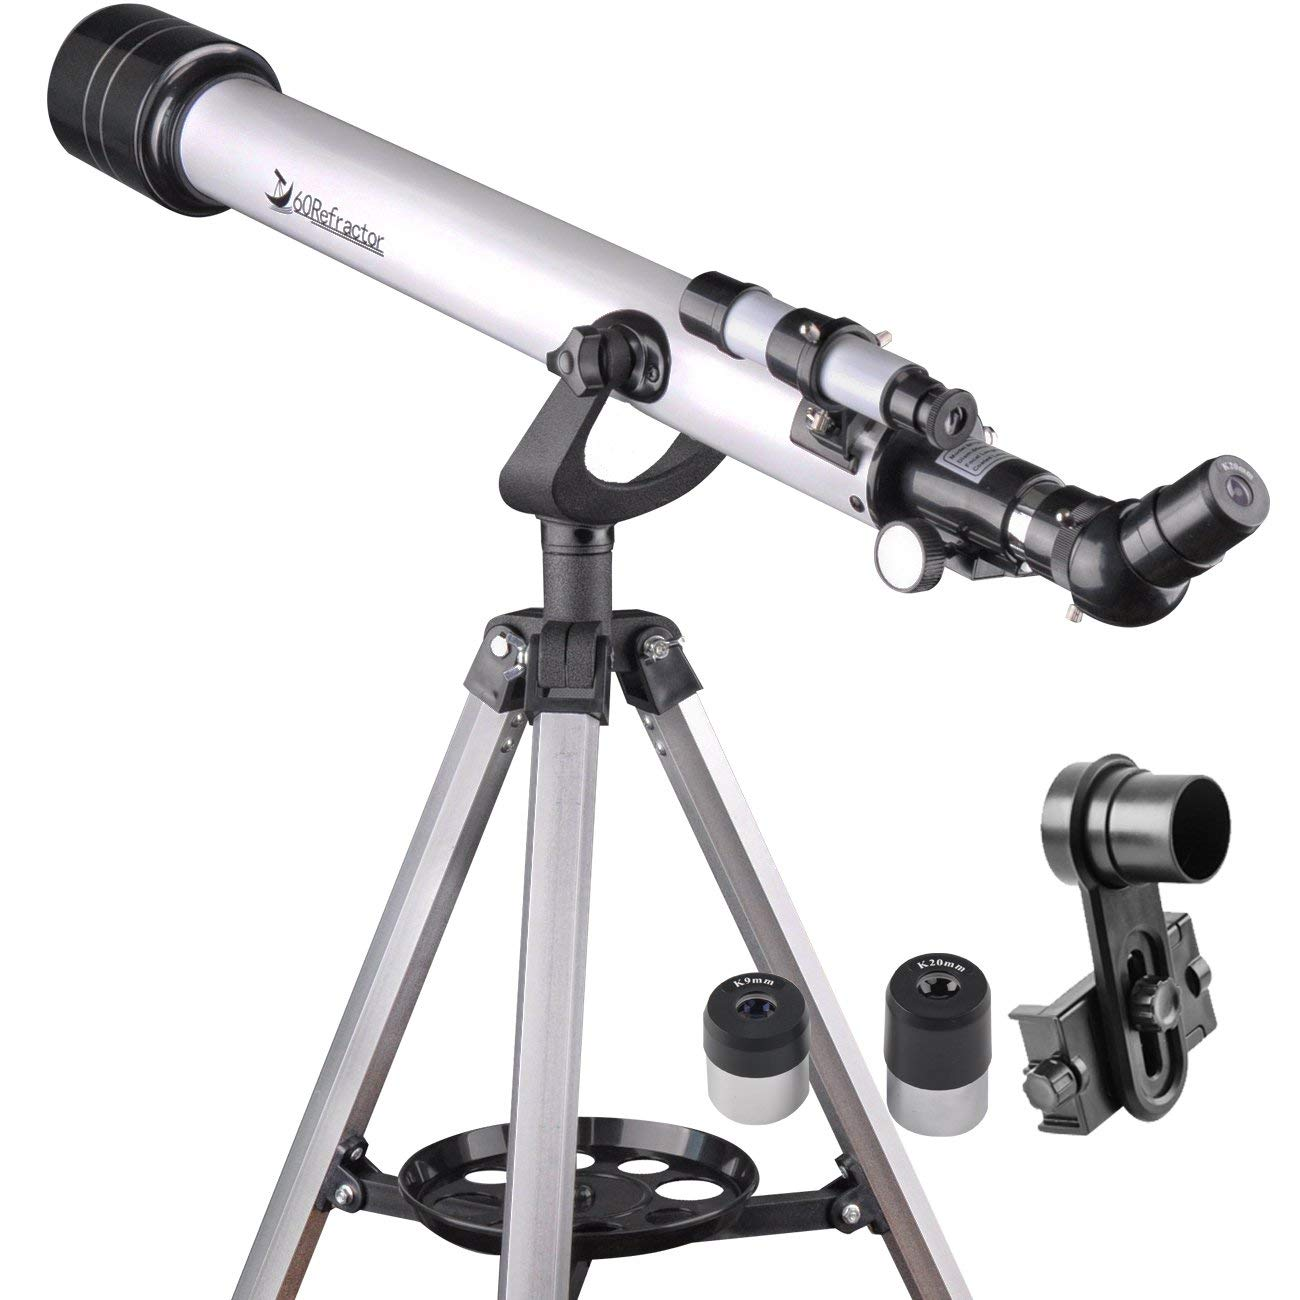 Cheap Telescope 700mm, find Telescope 700mm deals on line at